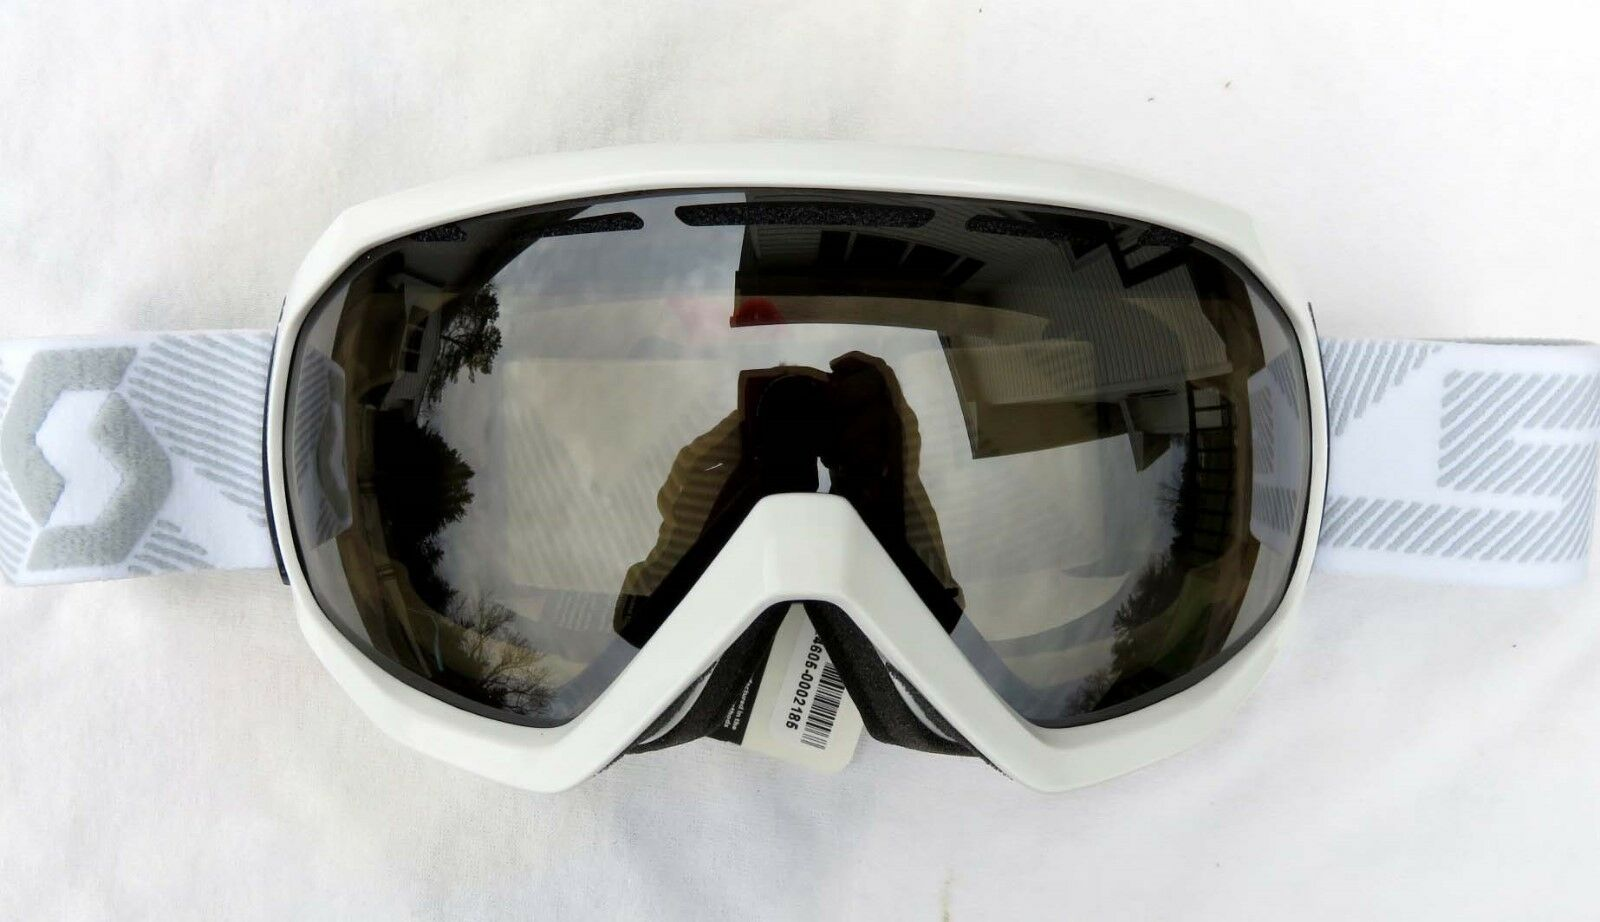 120 Scott Notice OTG Over The Glasses Gloss White Ski Goggles NL-32 Lens Womens  classic style